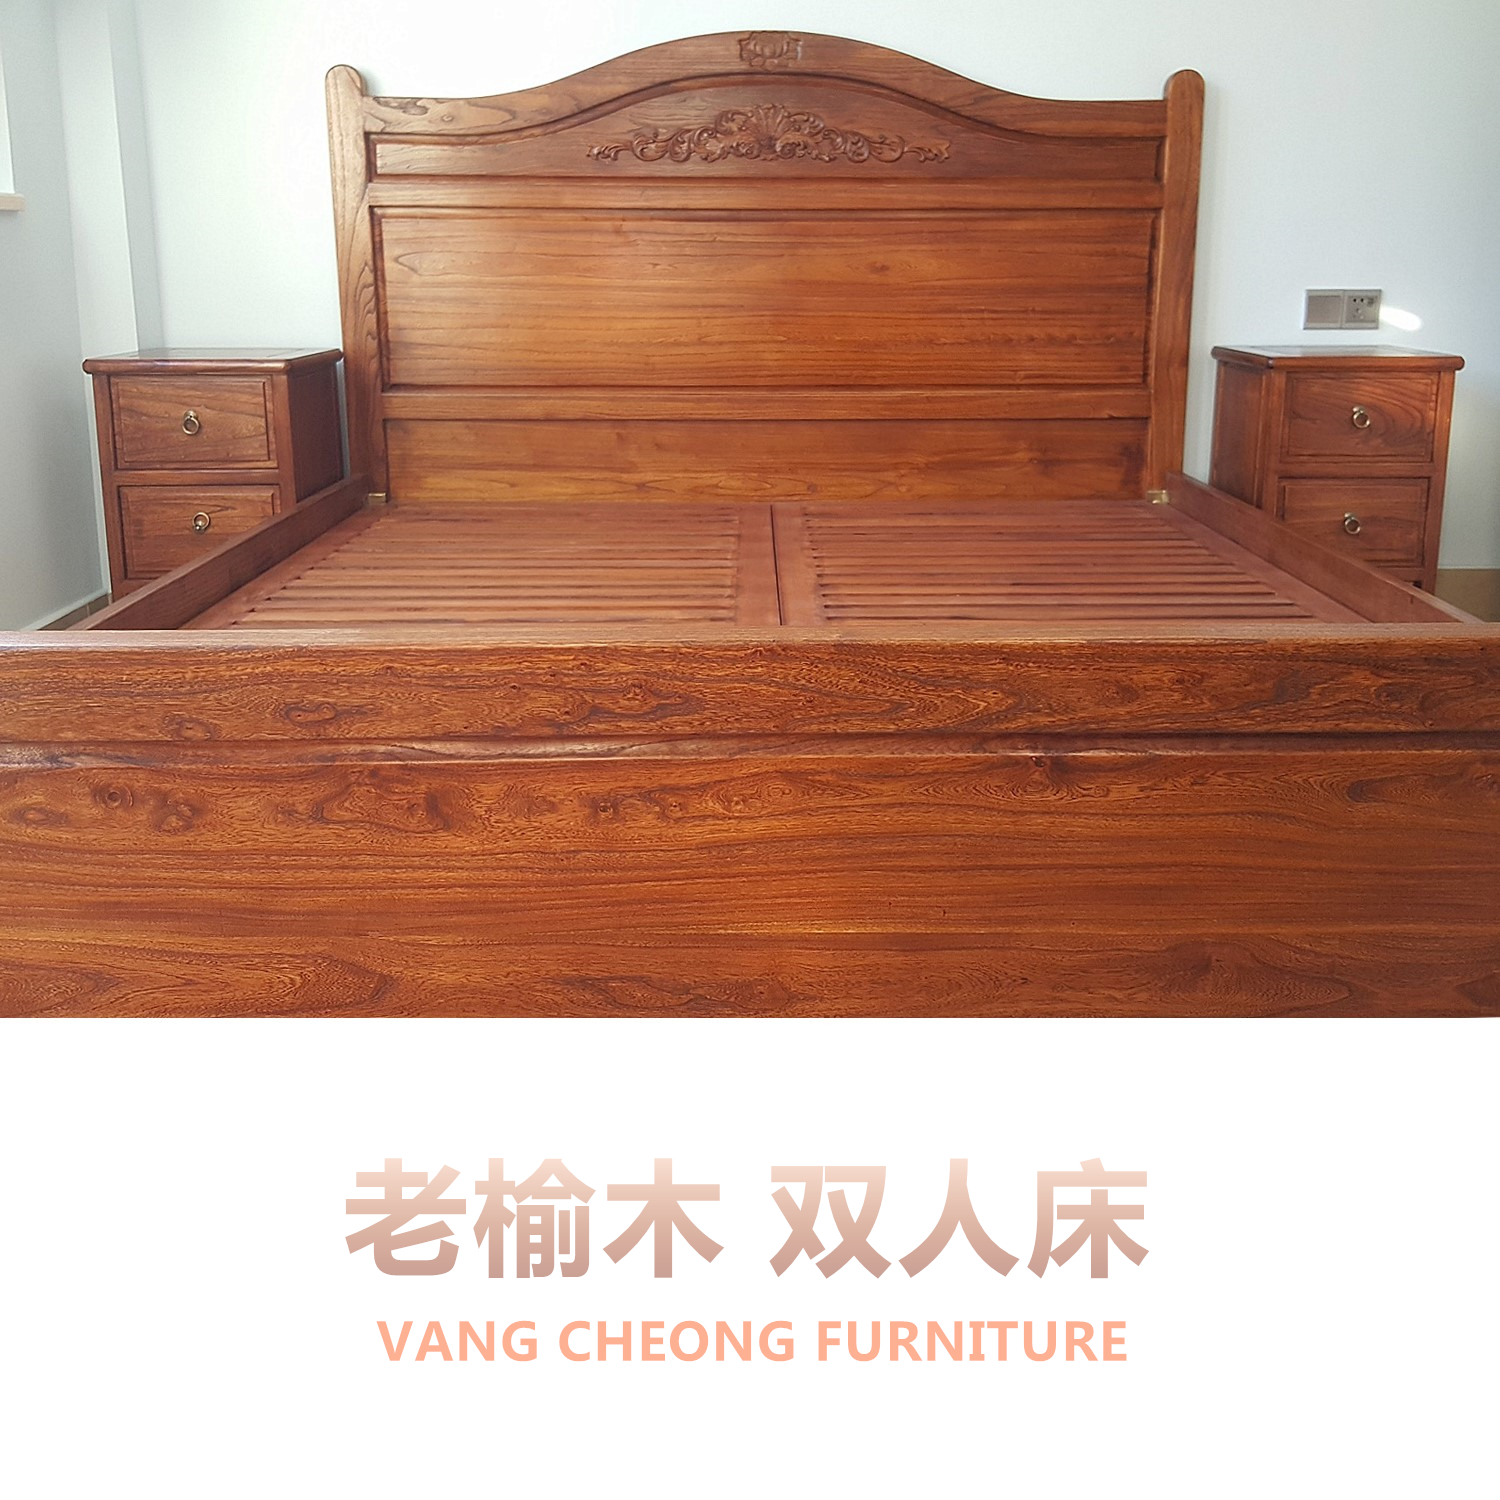 The old elm wood bedroom bedroom with double bed double bed frame can be split Tuochuang